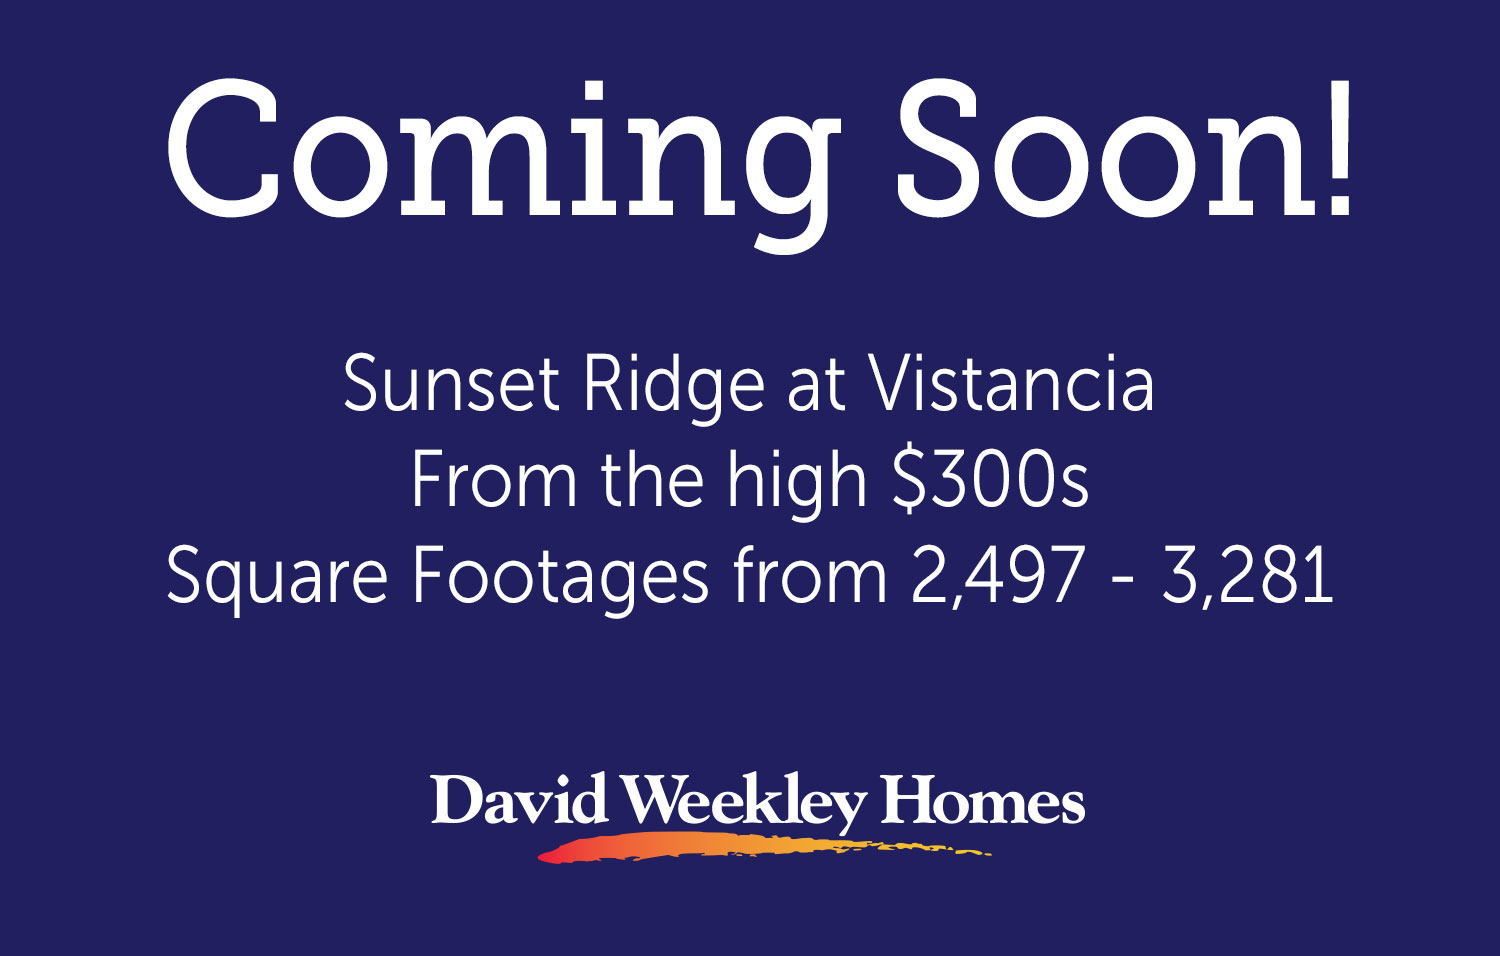 Susnet Ridge at Vistancia - Coming Soon